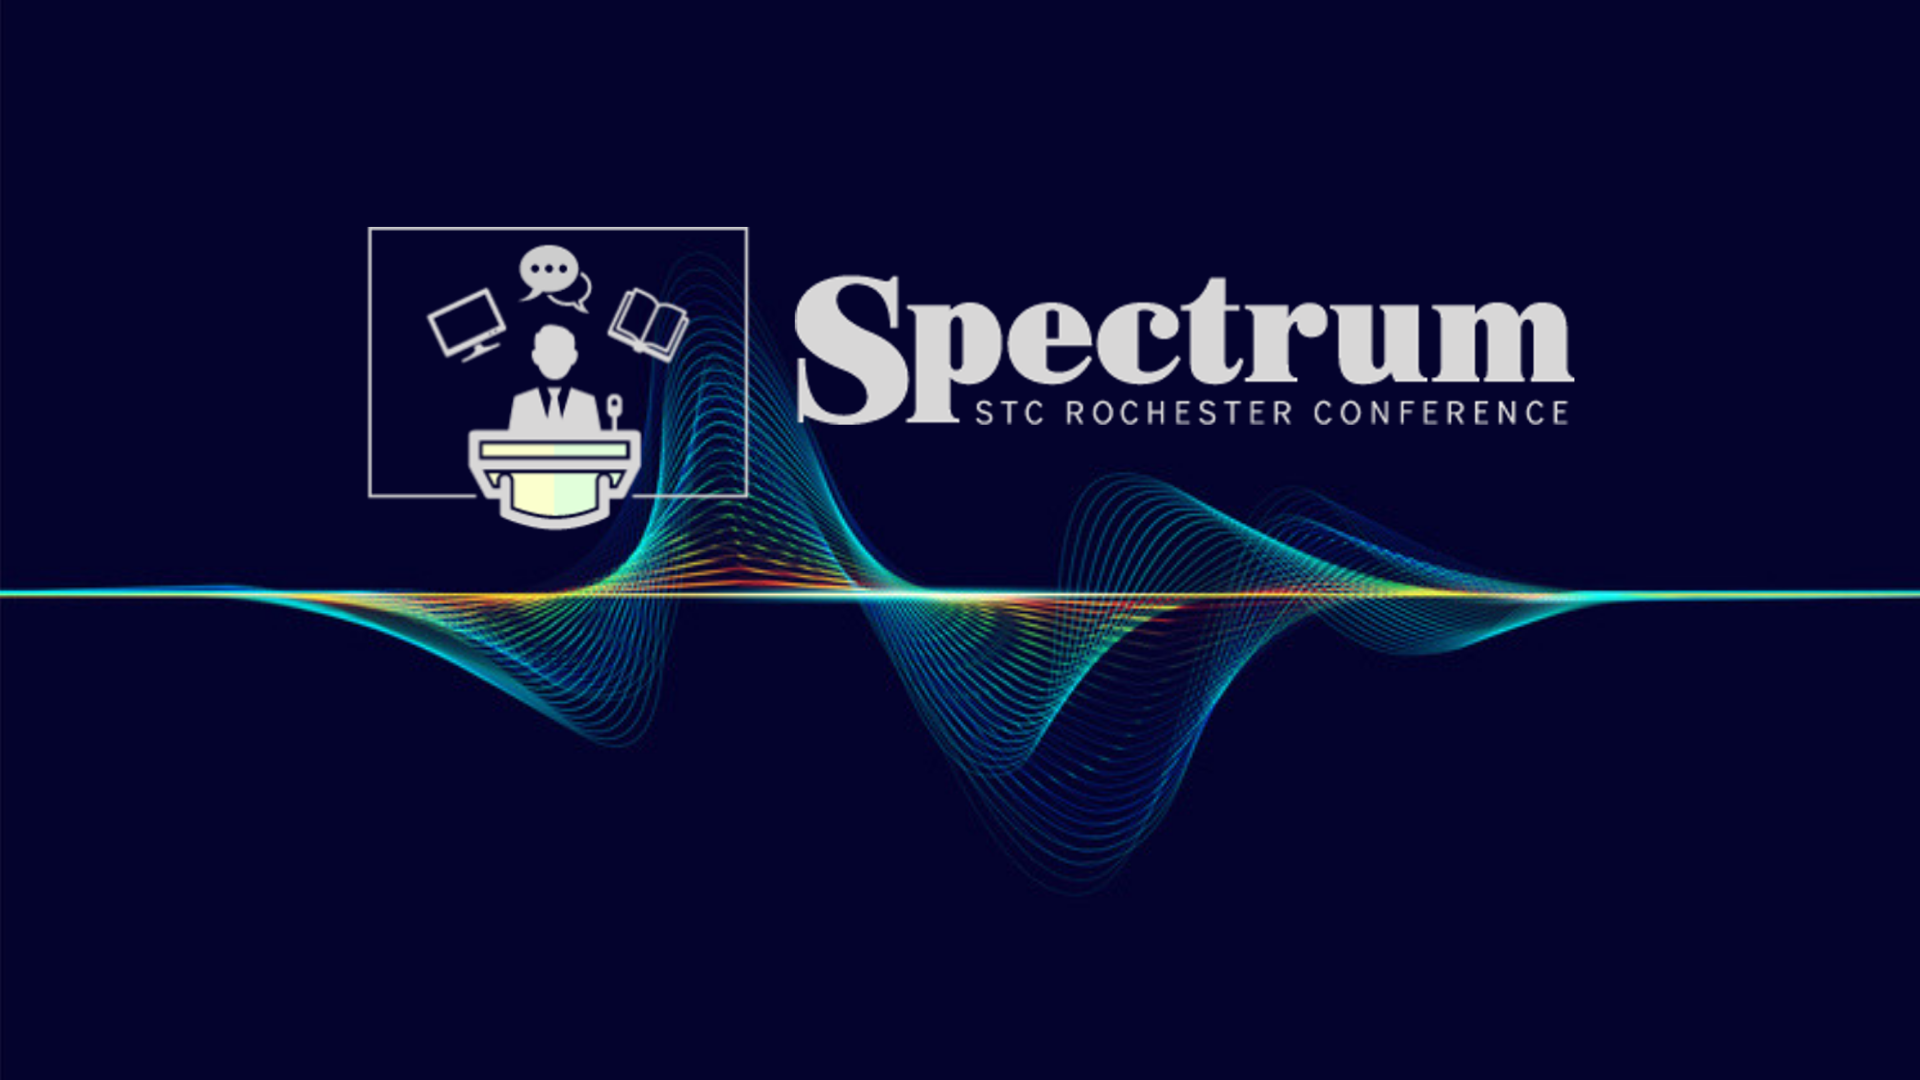 Join us at Spectrum 2020 in Rochester NY, March 21-23, 2020.